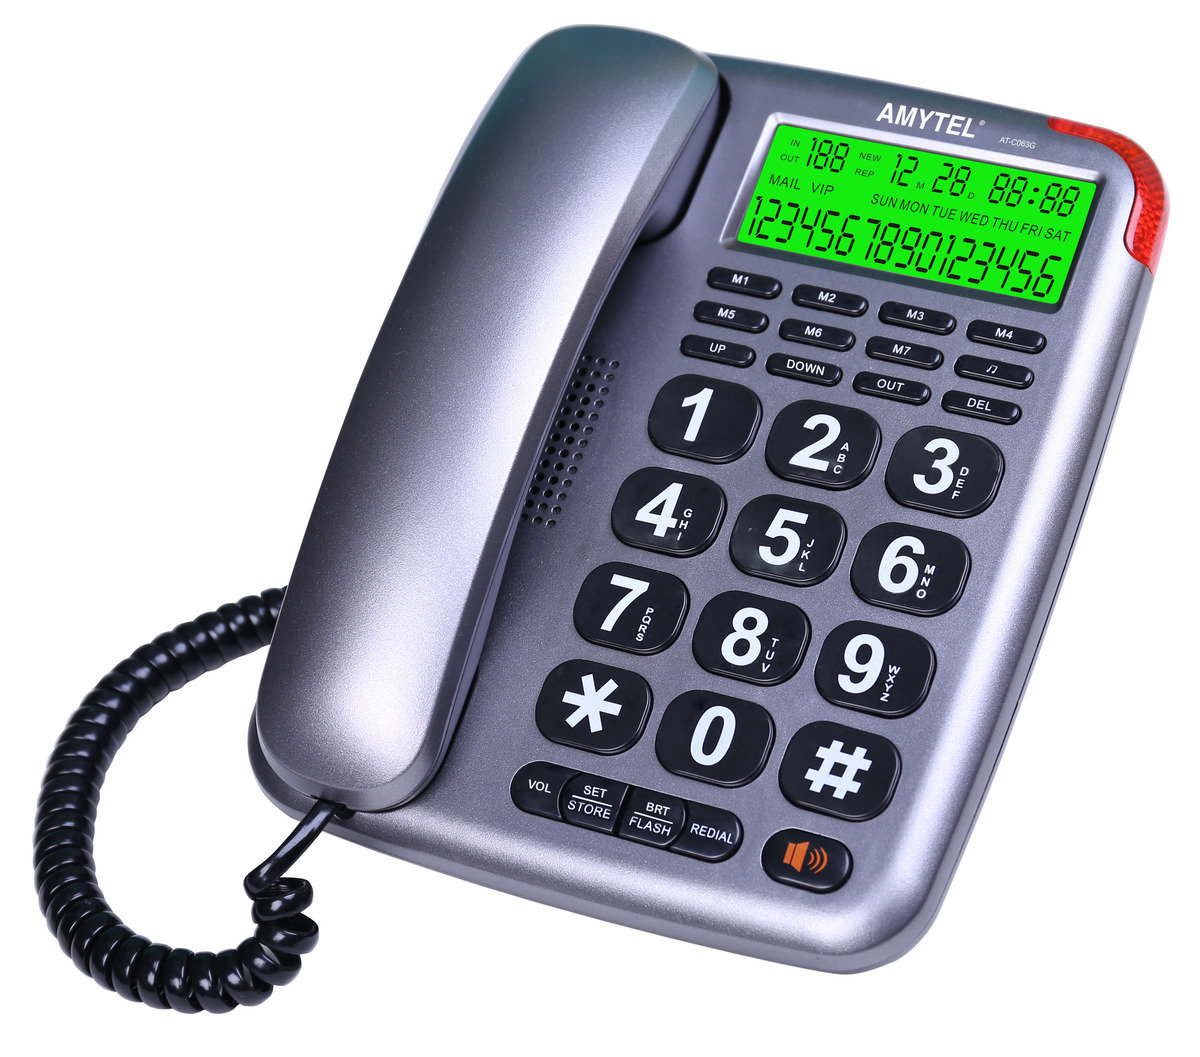 AT-C063G Big Button Home CID Phone